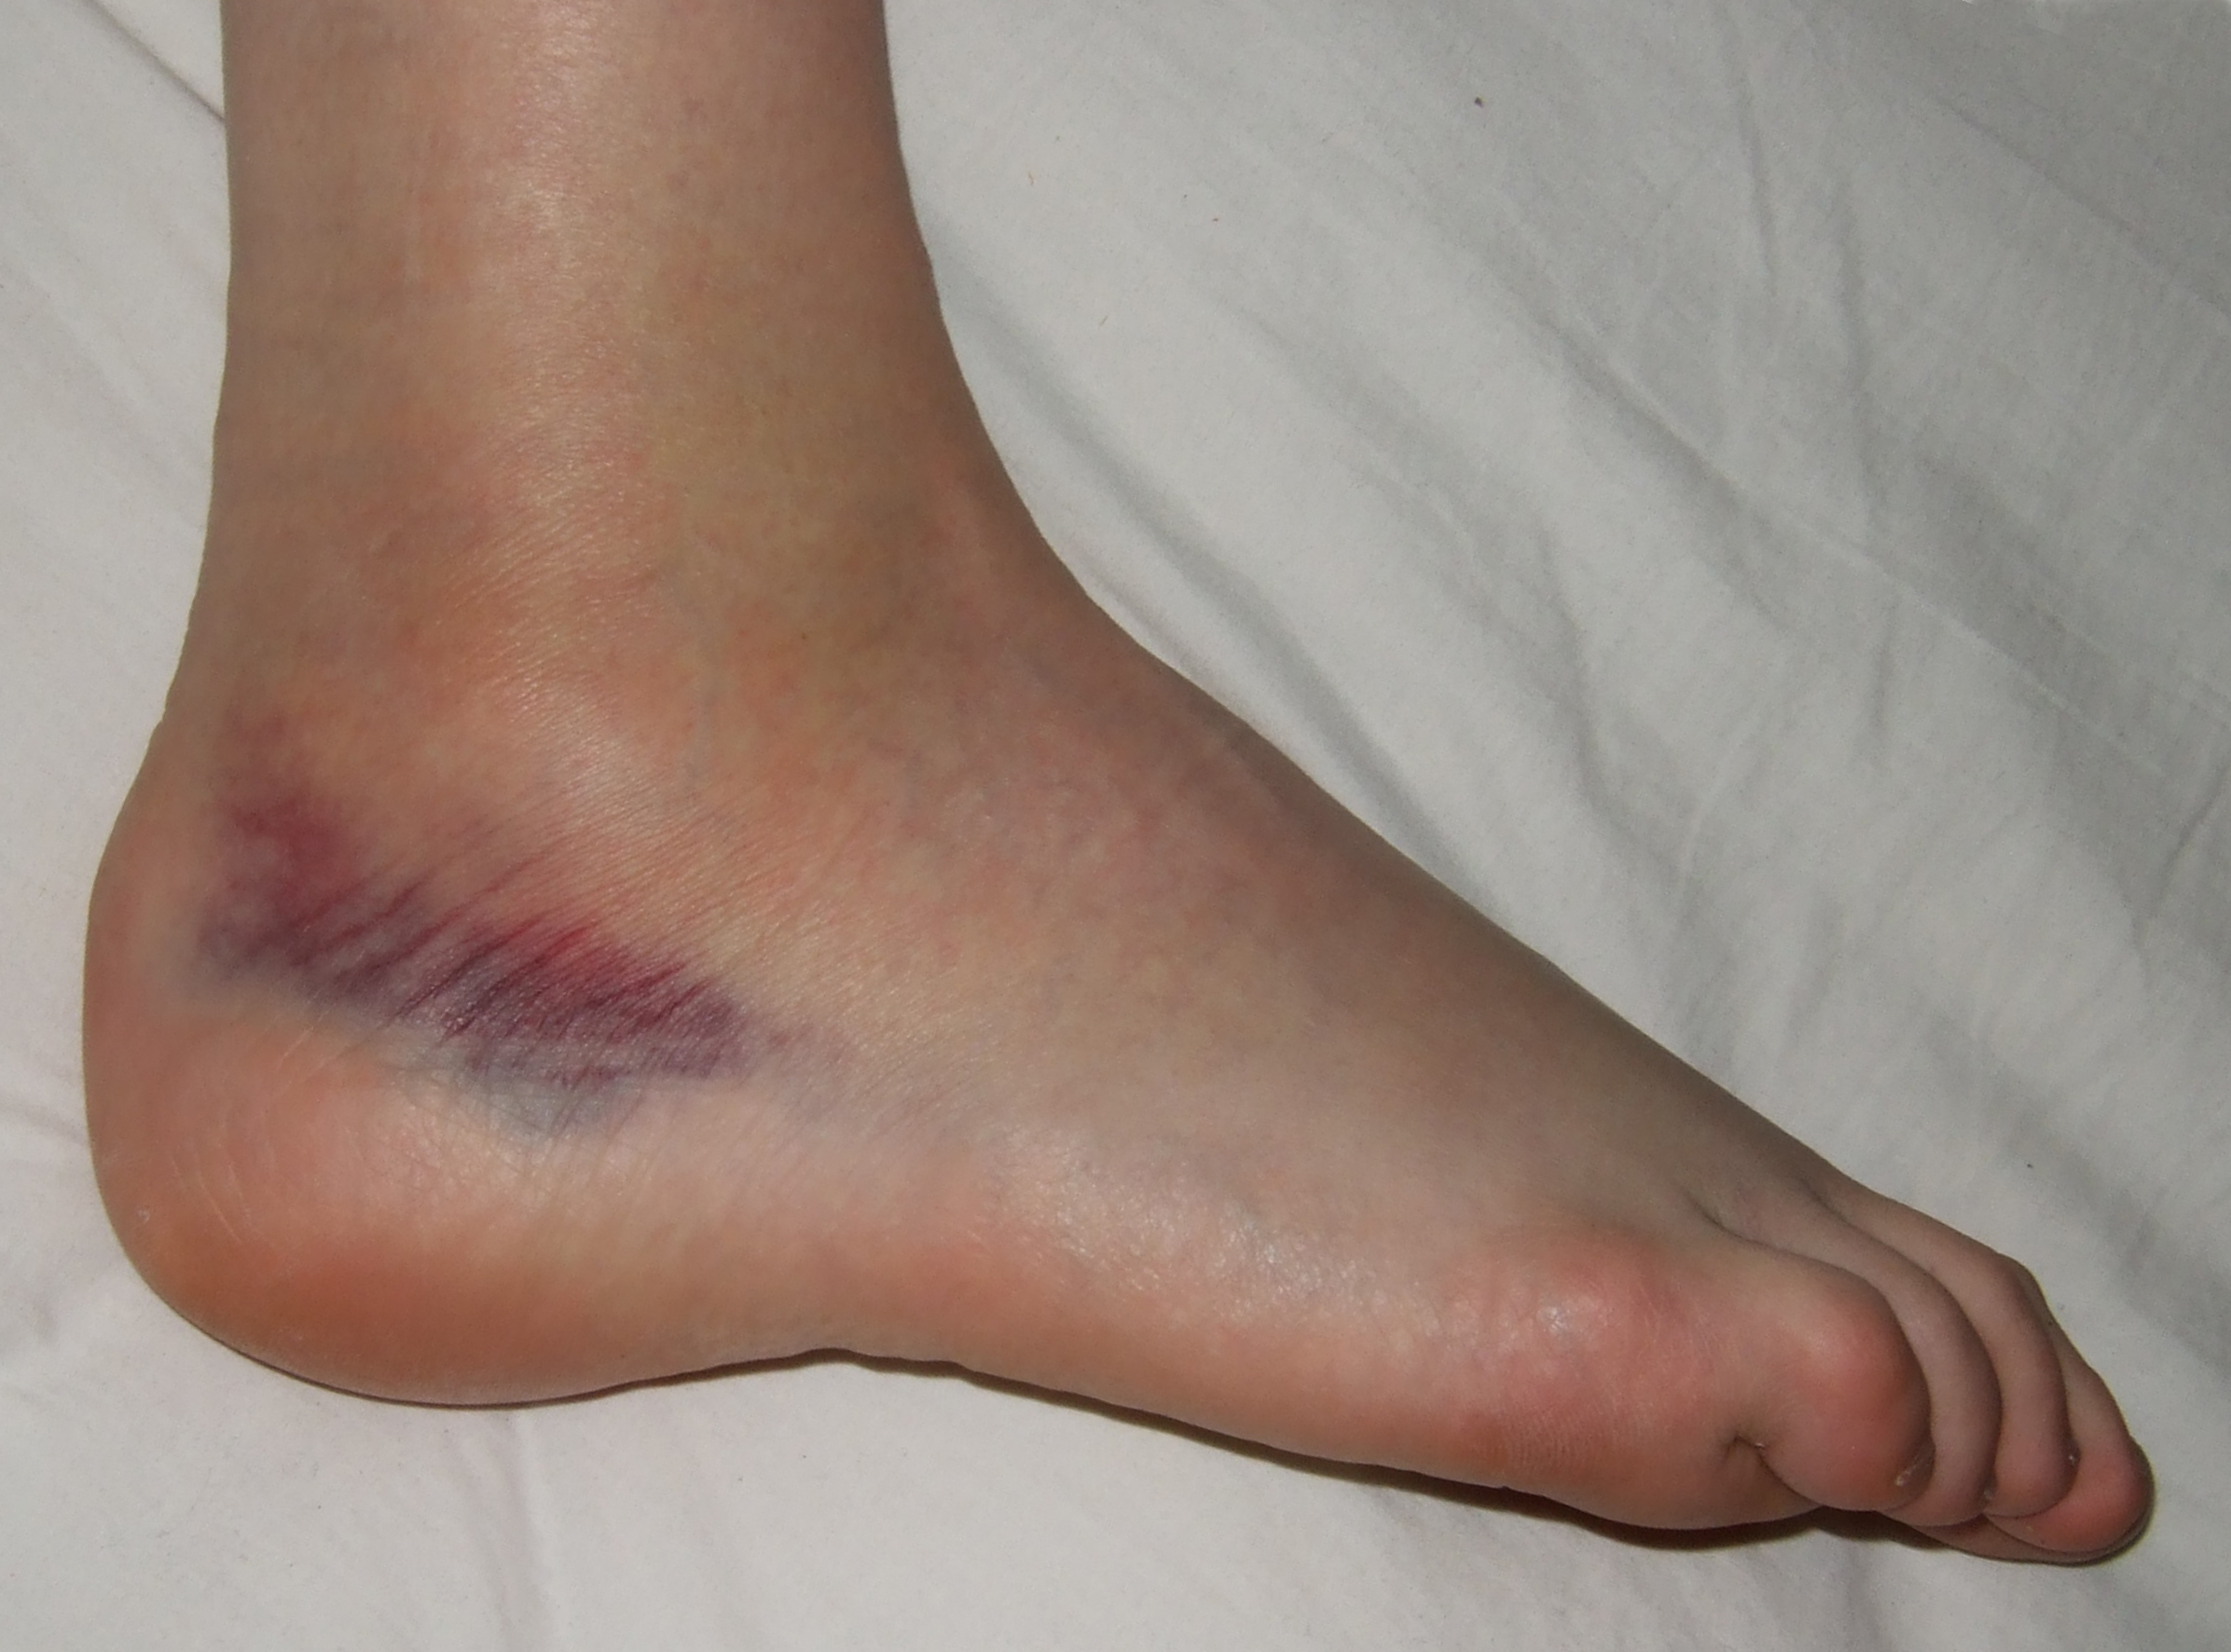 File:Sprained FOOT.jpg - Wikipedia, the free encyclopedia